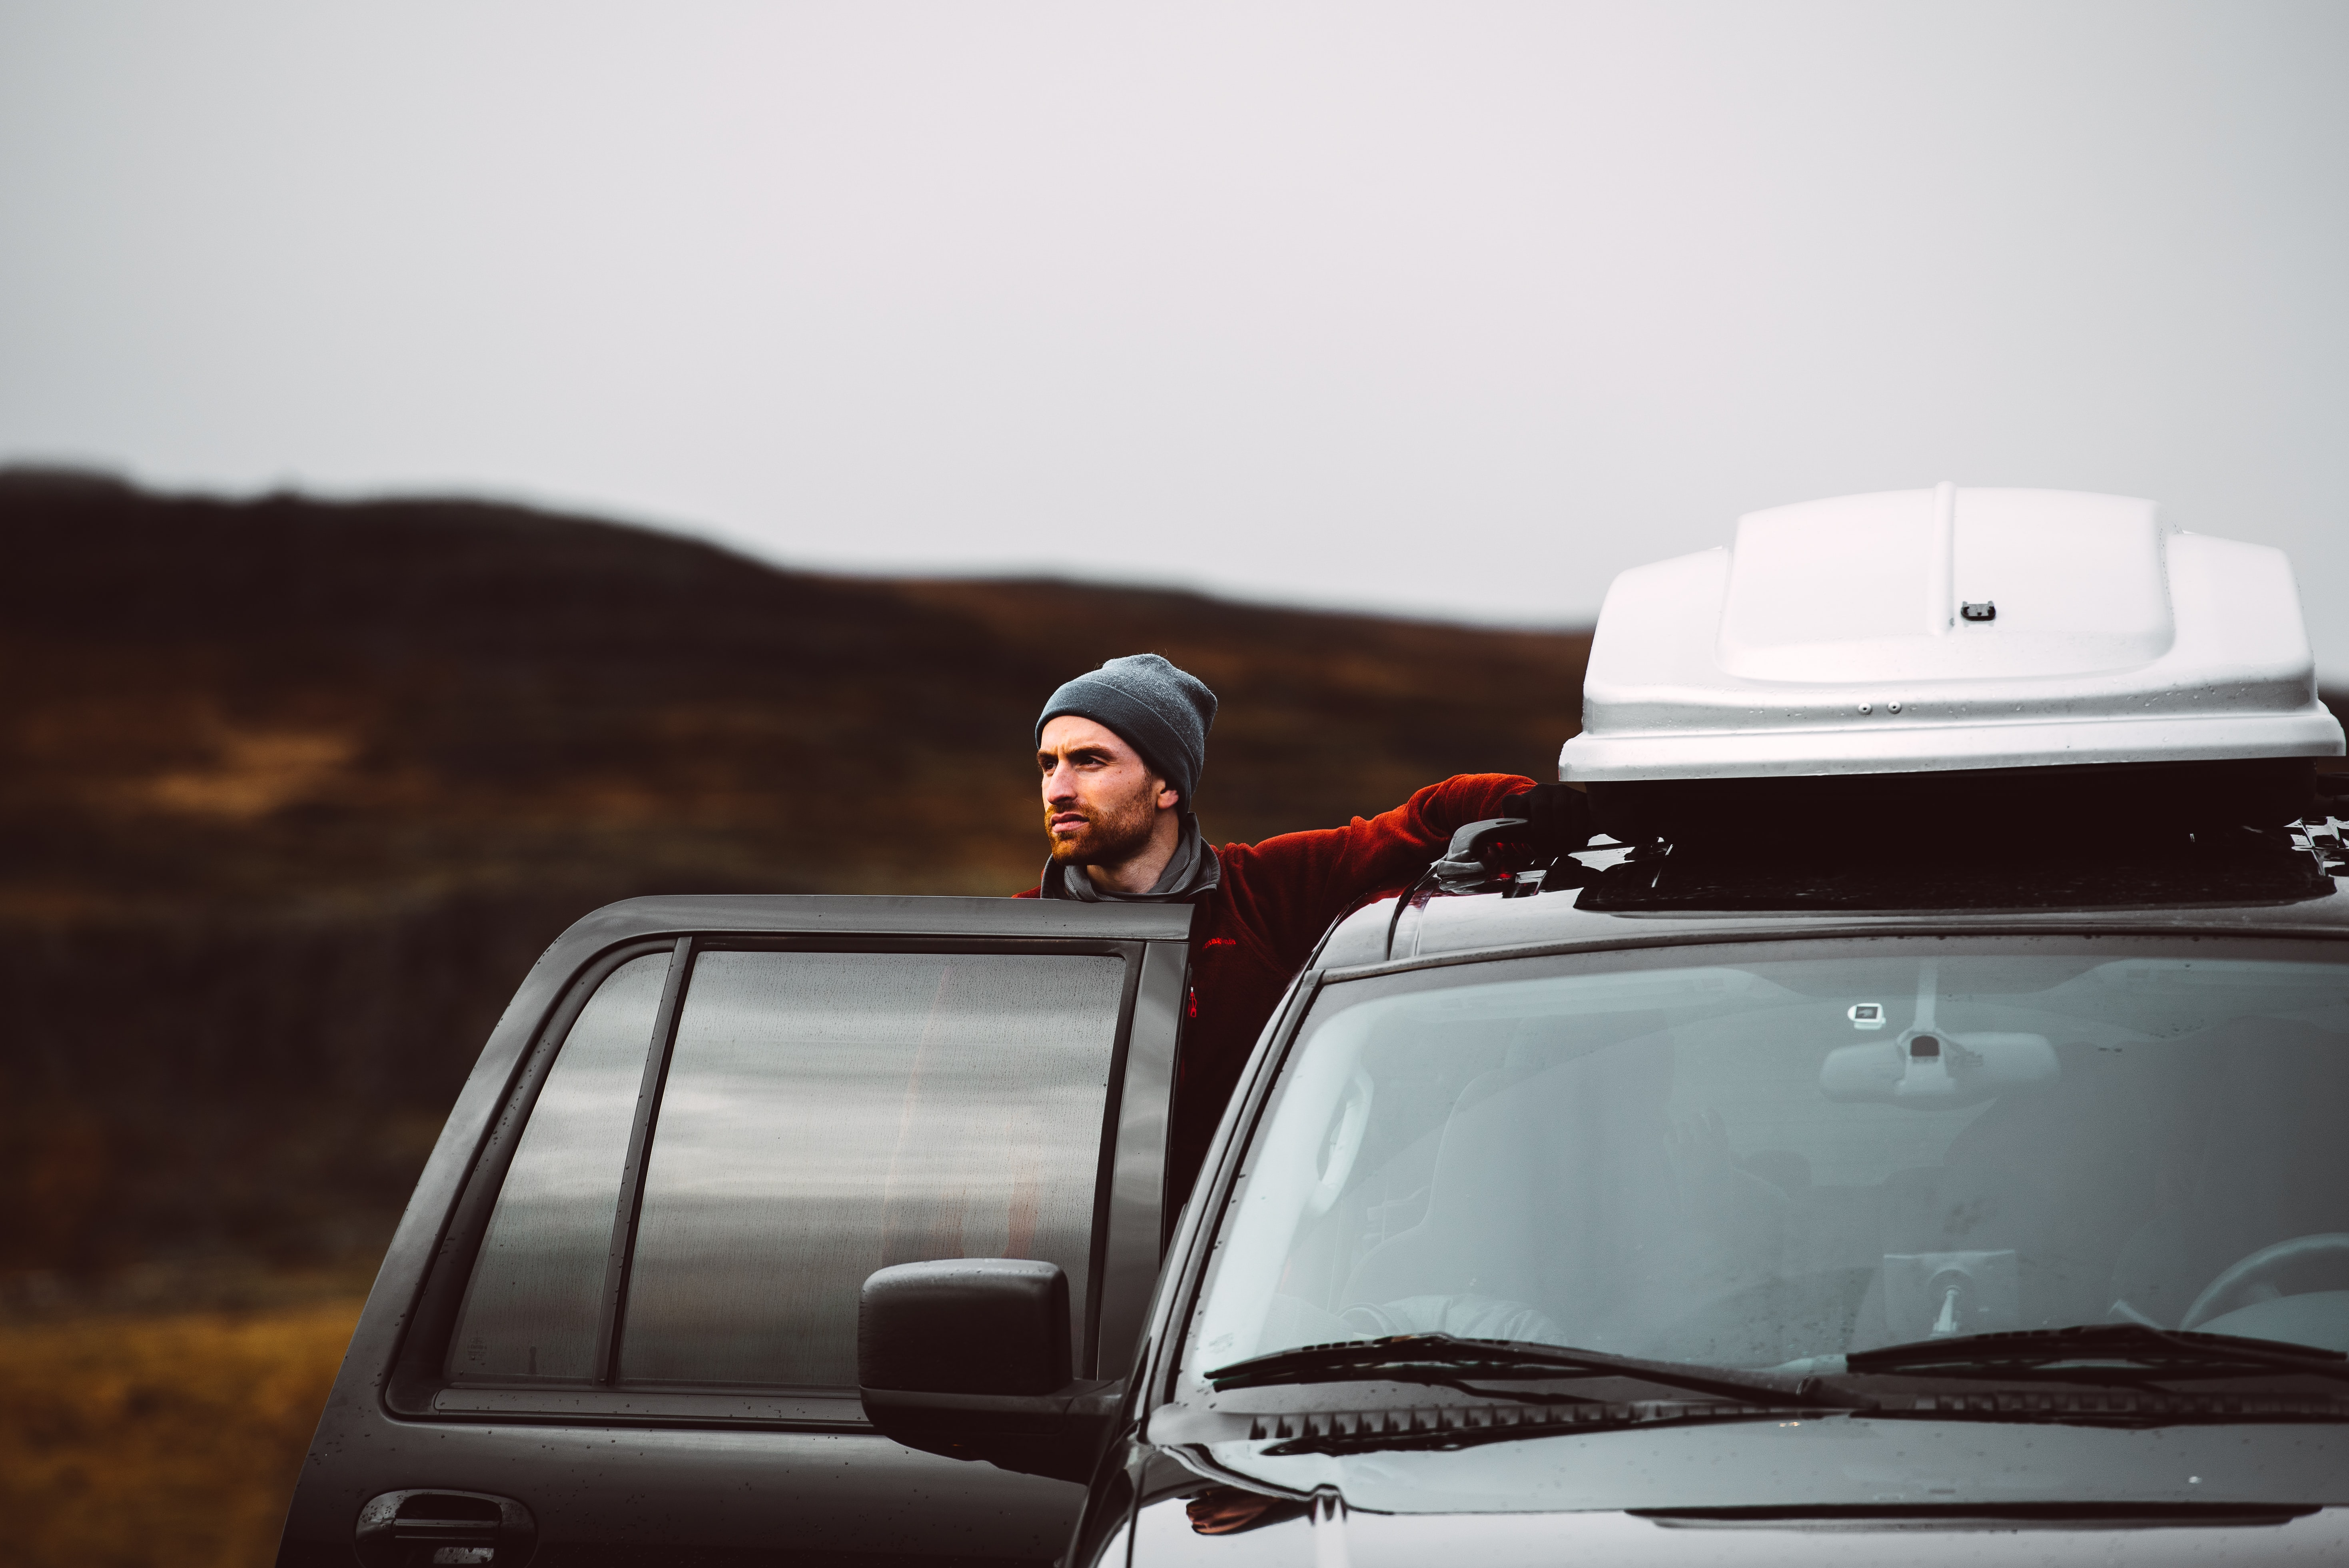 A bearded man in a beanie stepping outside his car in the Icelandic wilderness